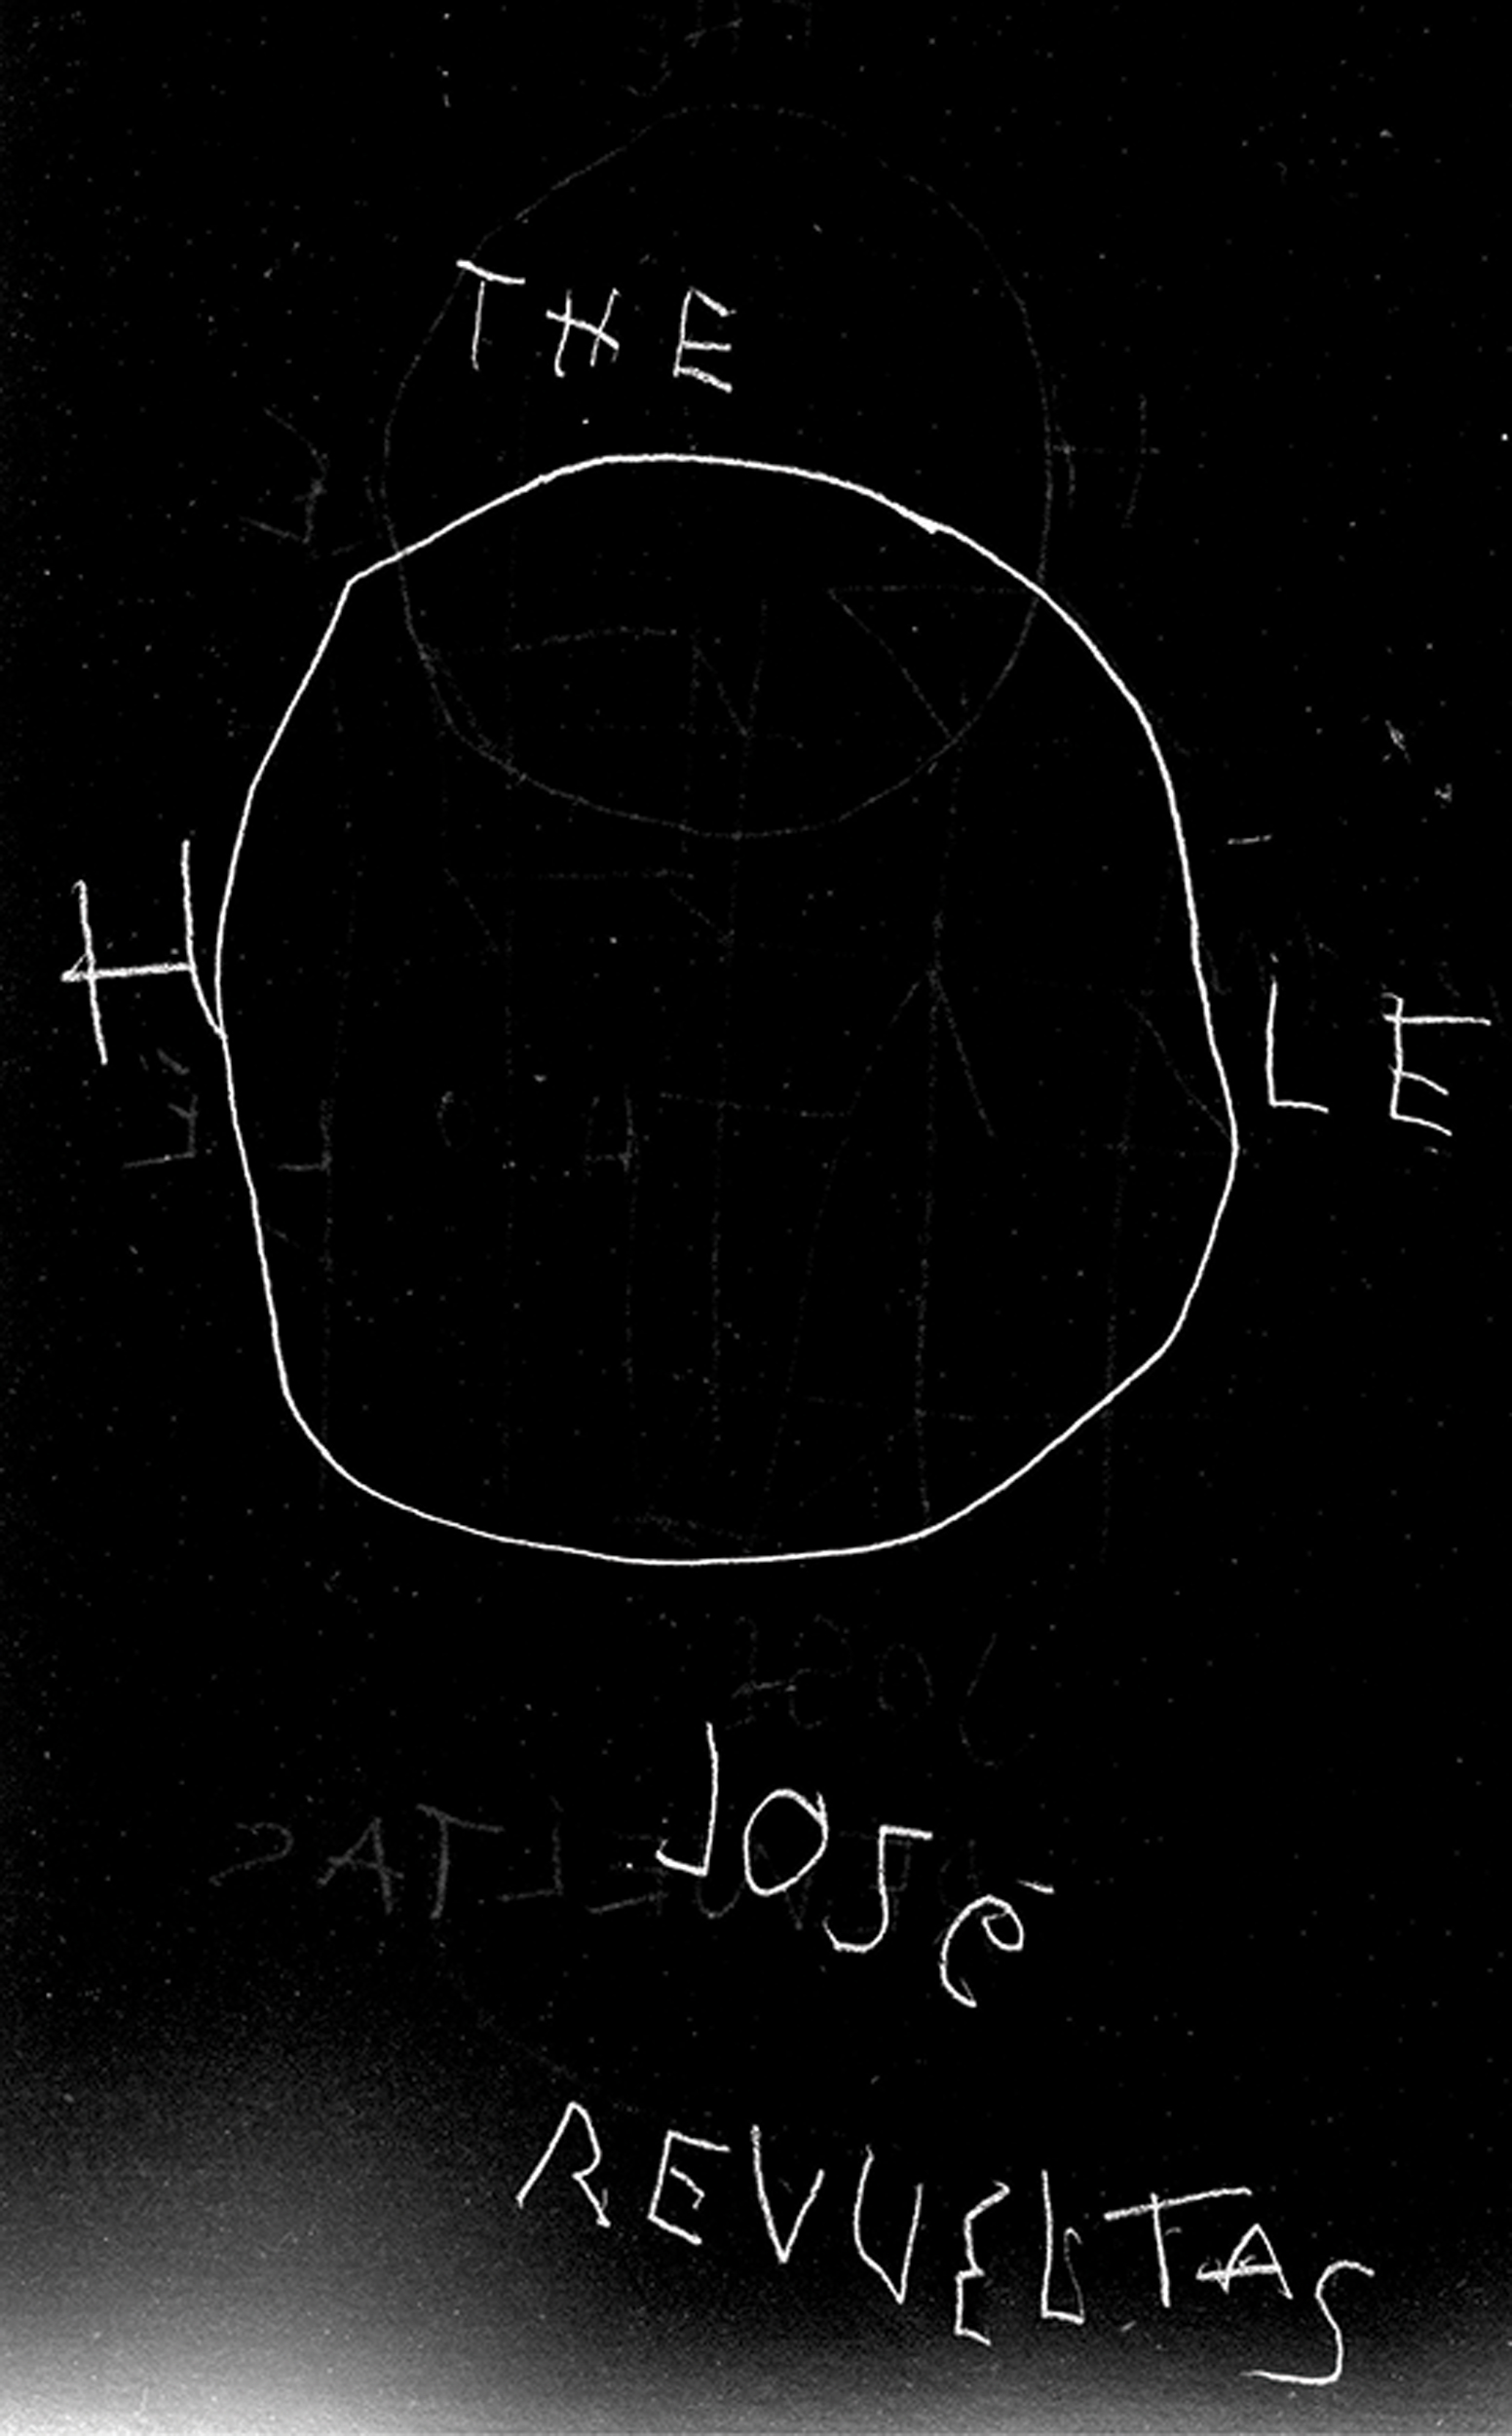 Echoes from the Void: José Revueltas's The Hole - Slant Magazine